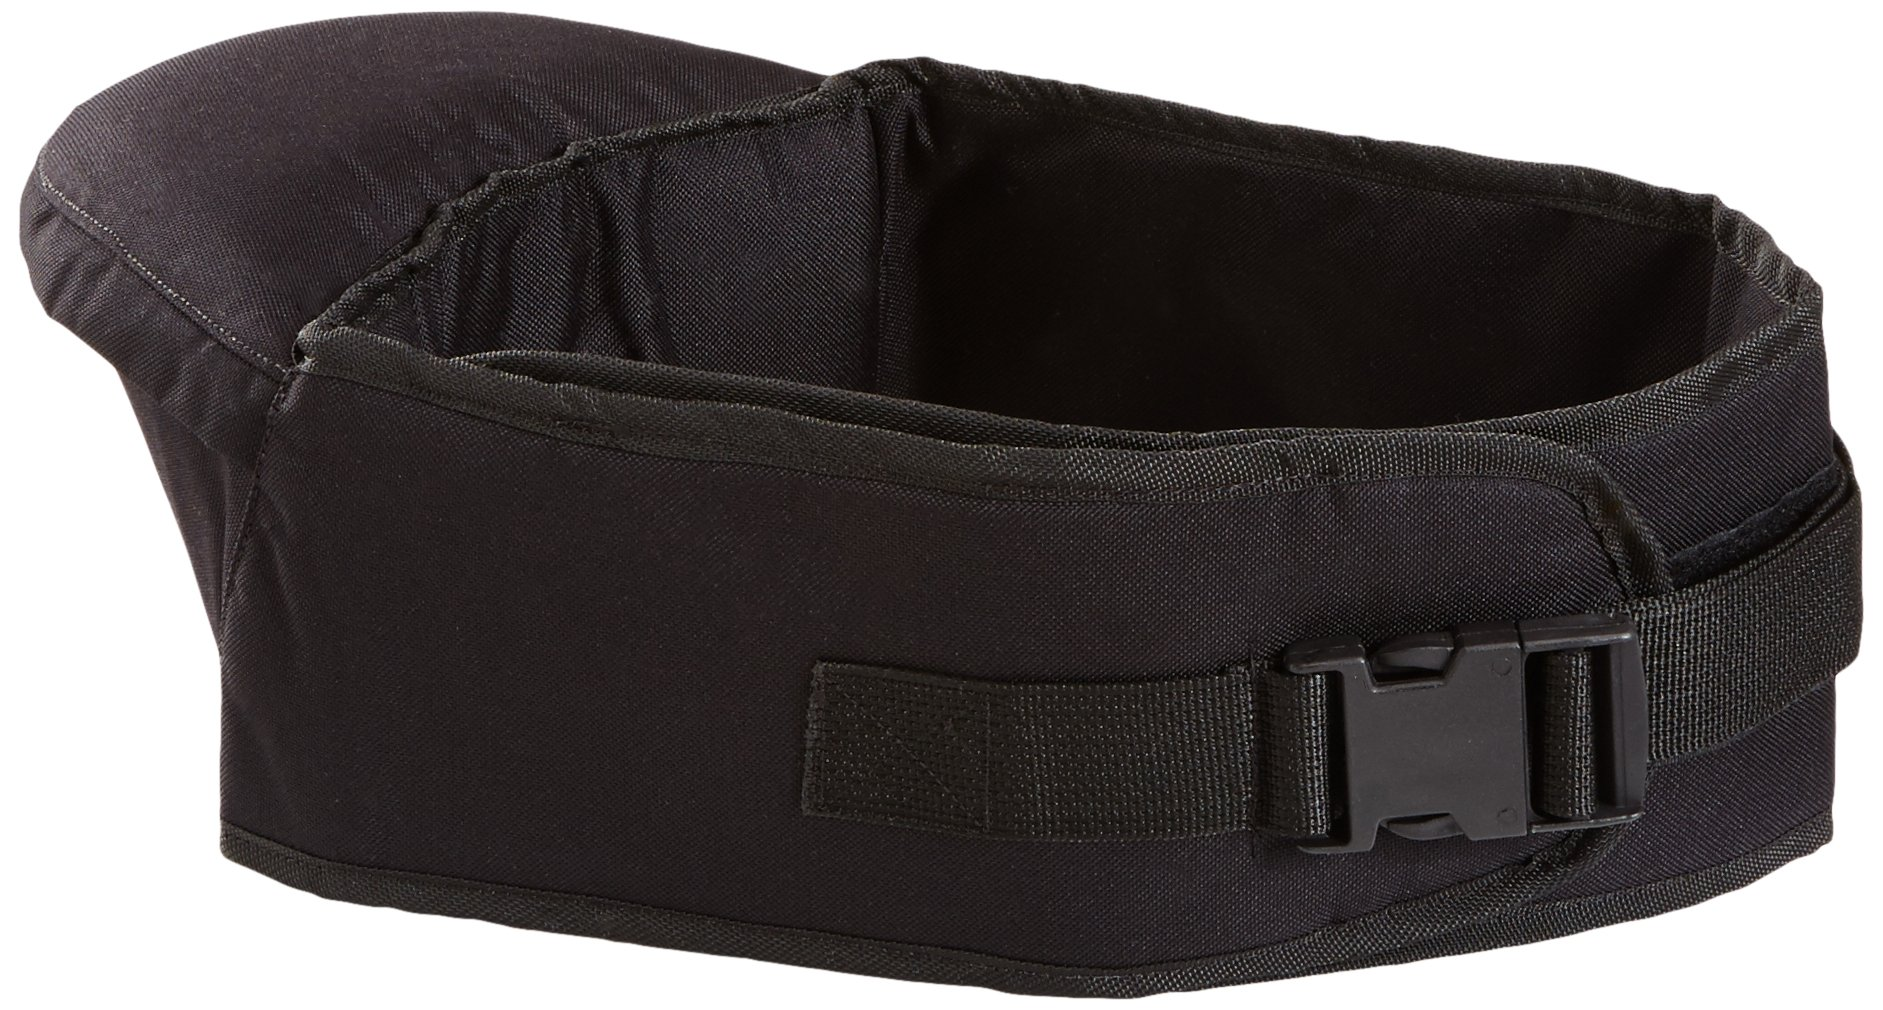 Pomfitis Carry G8766Baby Belly Waist Strapless Black Pomfitis LTD No more back pains from carrying your baby around! The Side Ride is a back supporting belt with an integrated child seat The Side Ride distributes your baby's weight evenly, reducing the strain on your spine, shoulder and arm 1